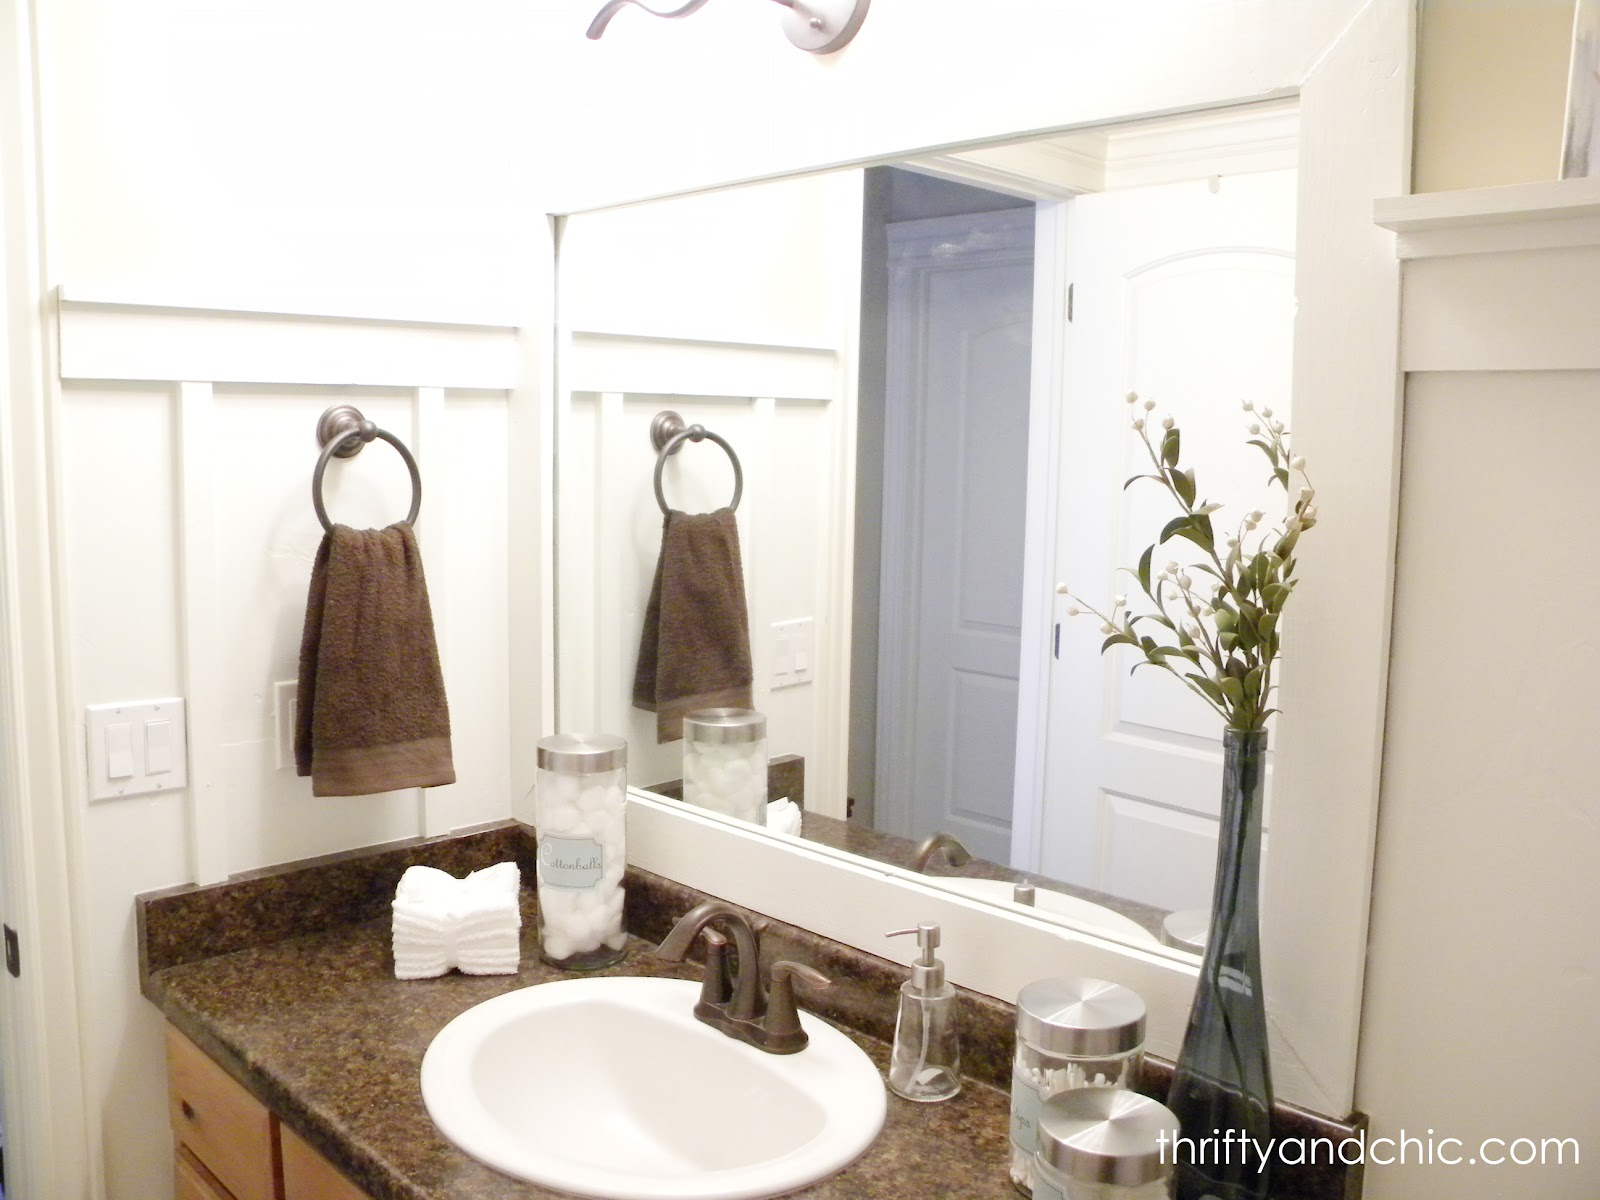 Thrifty and chic diy projects and home decor for Bathroom design board